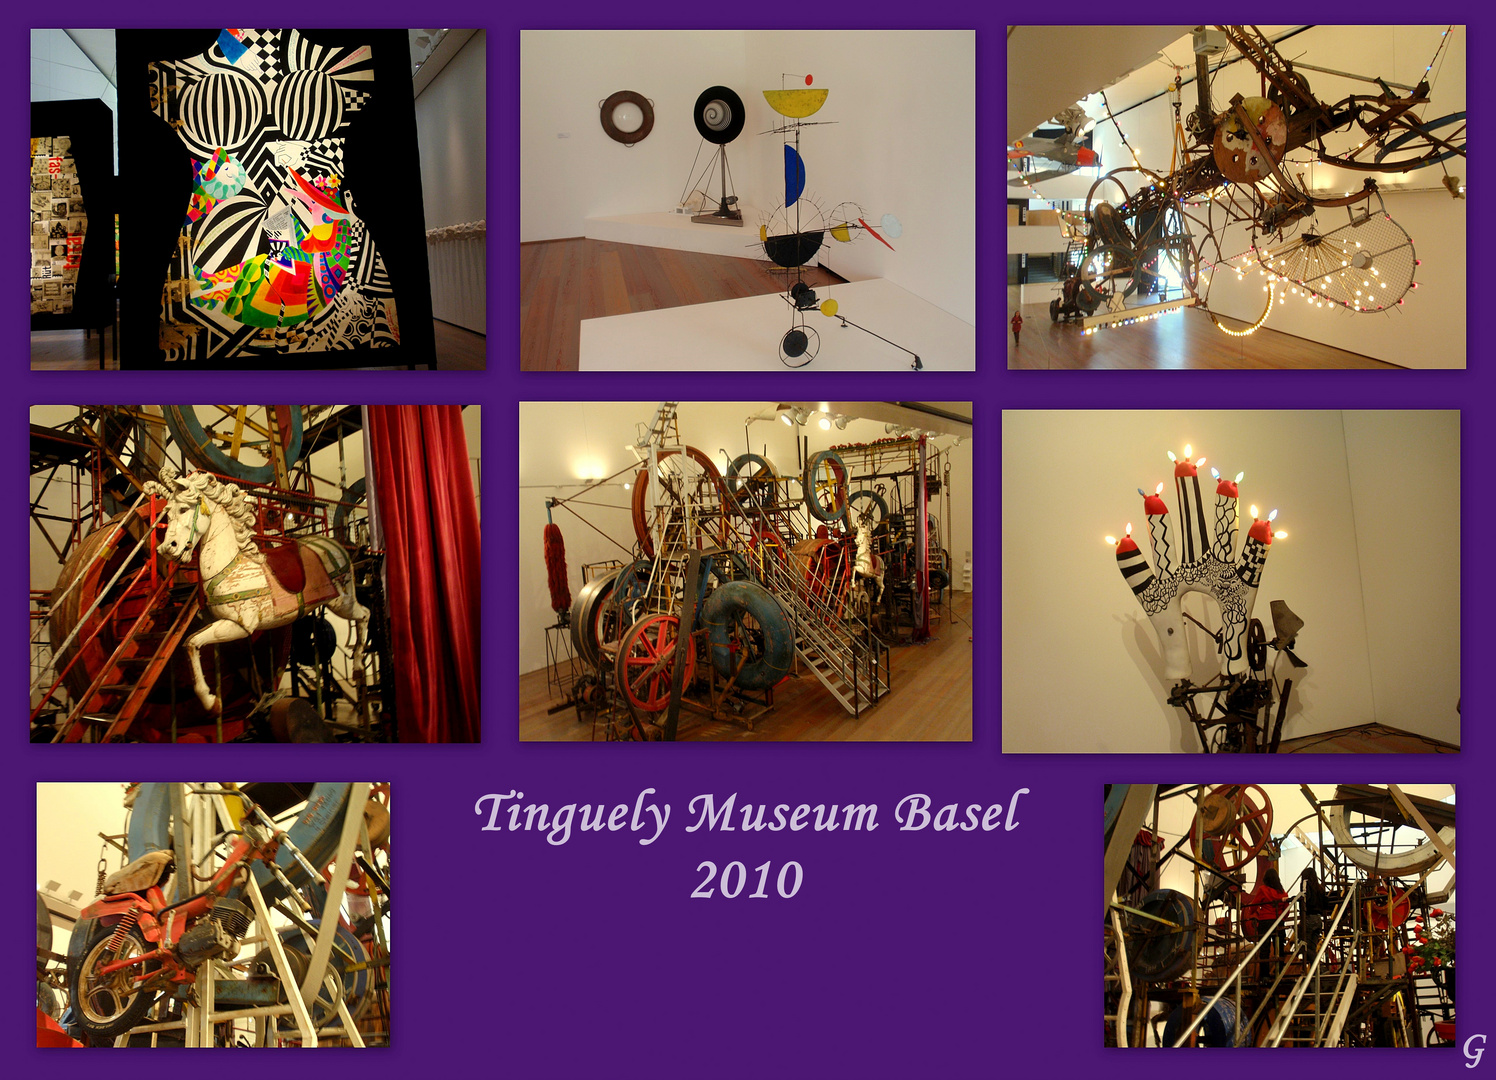 Tinguely Museum Basel 2010